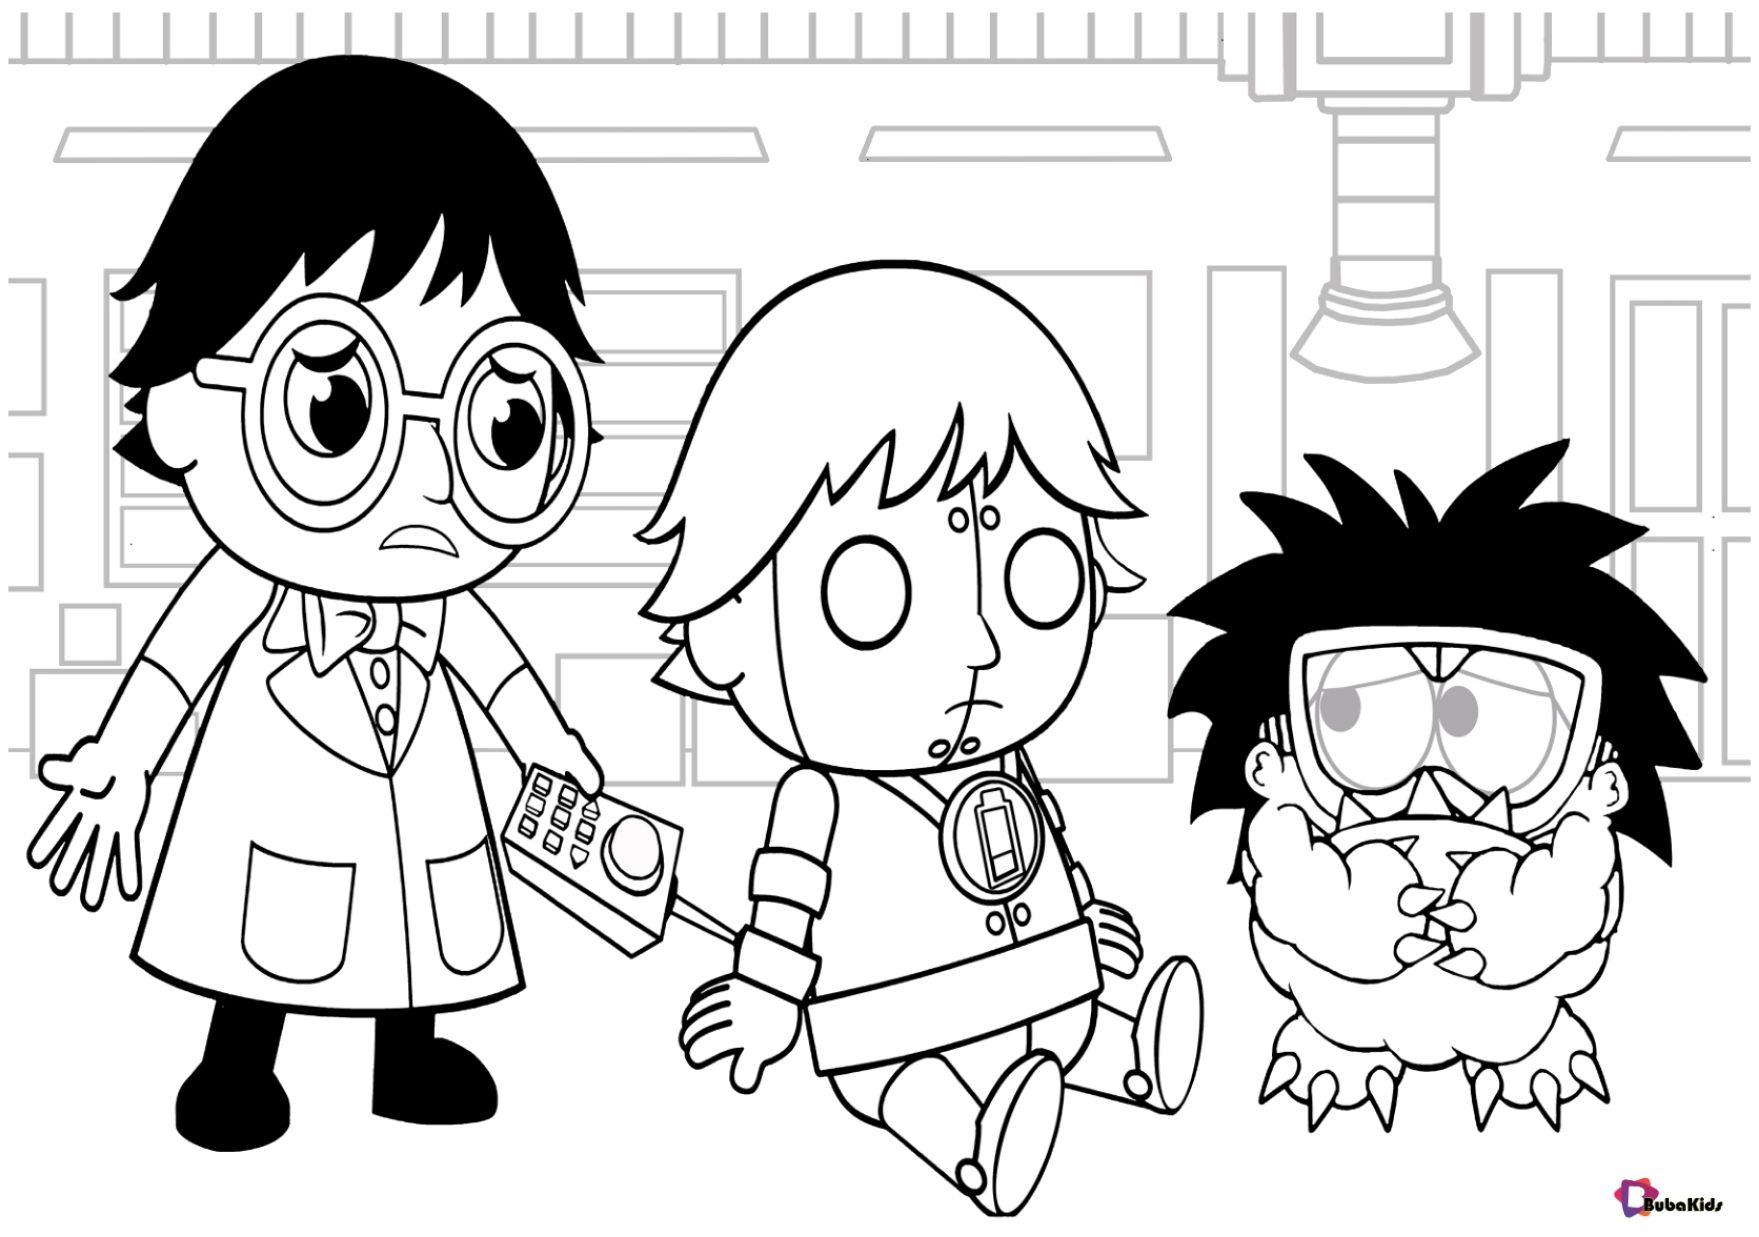 Ryan S World Cartoon Coloring Pages Collection Of Cartoon Coloring Pages For Teenage Printable In 2020 Cartoon Coloring Pages Coloring Pages Printable Coloring Pages